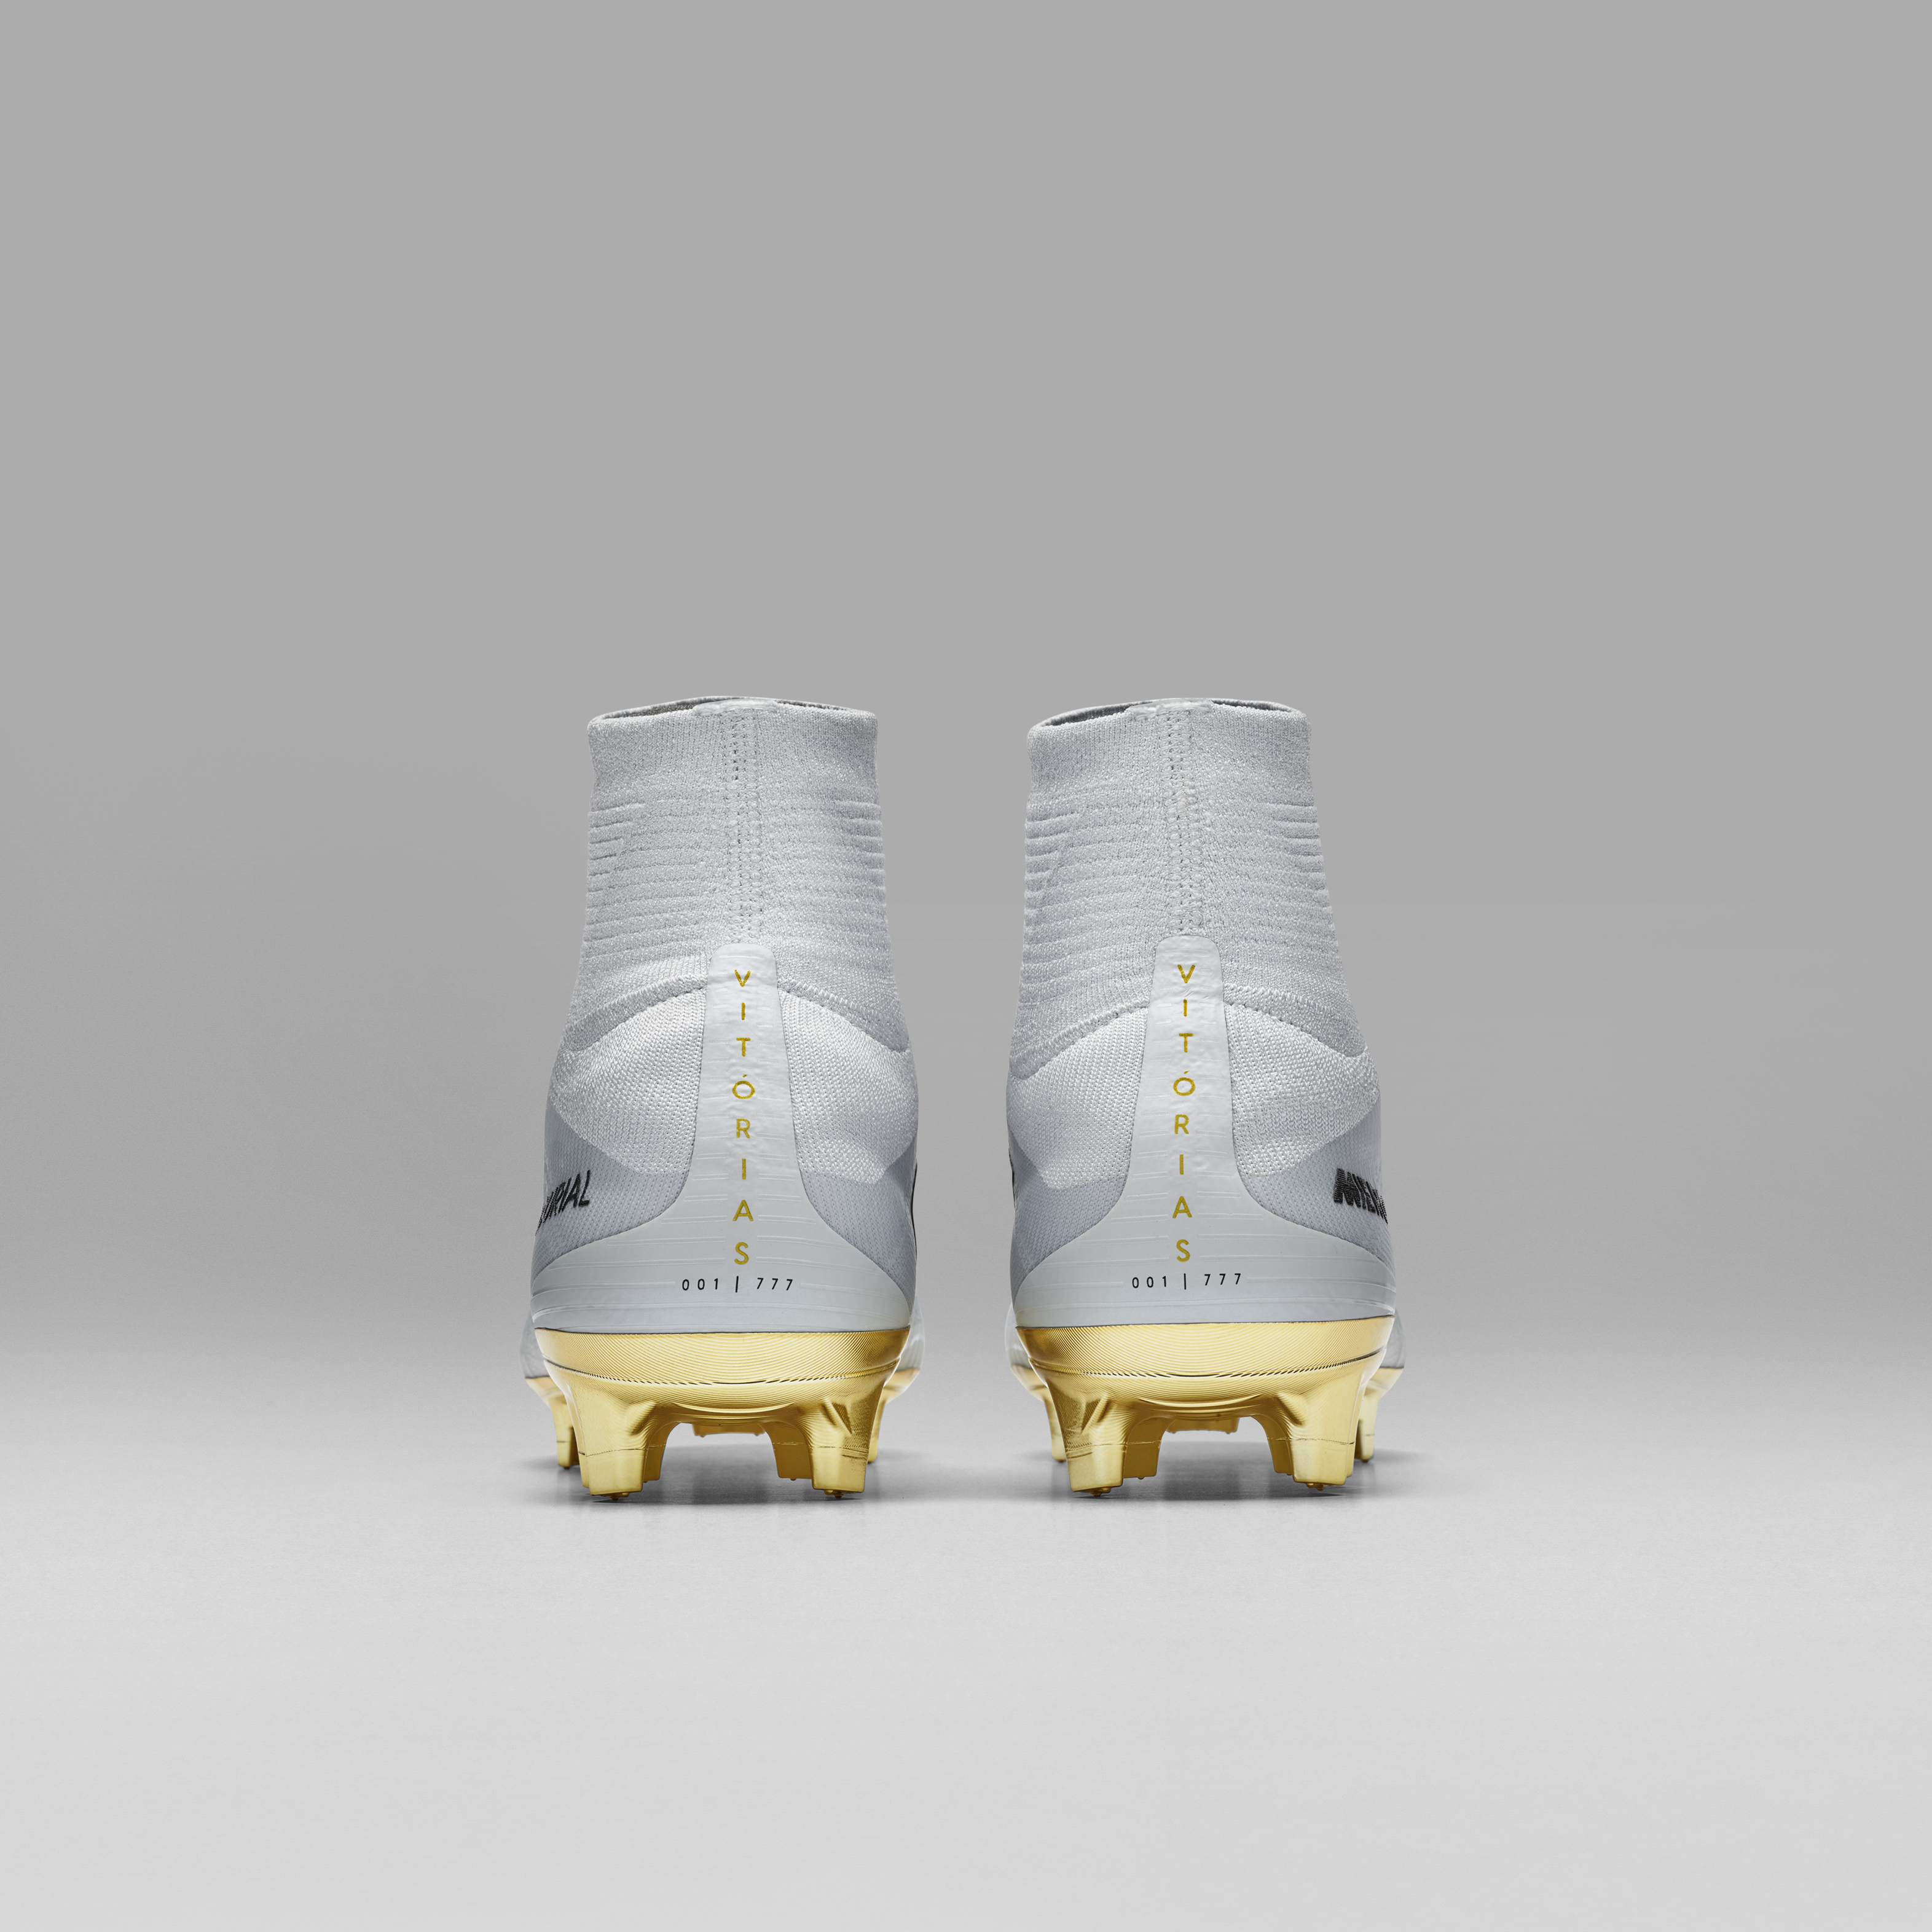 c63a9f9f79c7 Nike Celebrates Cristiano Ronaldo's 2016 Ballon d'Or Win with  Limited-Edition Mercurial Superfly CR7 Vitórias - Pursuit Of Dopeness